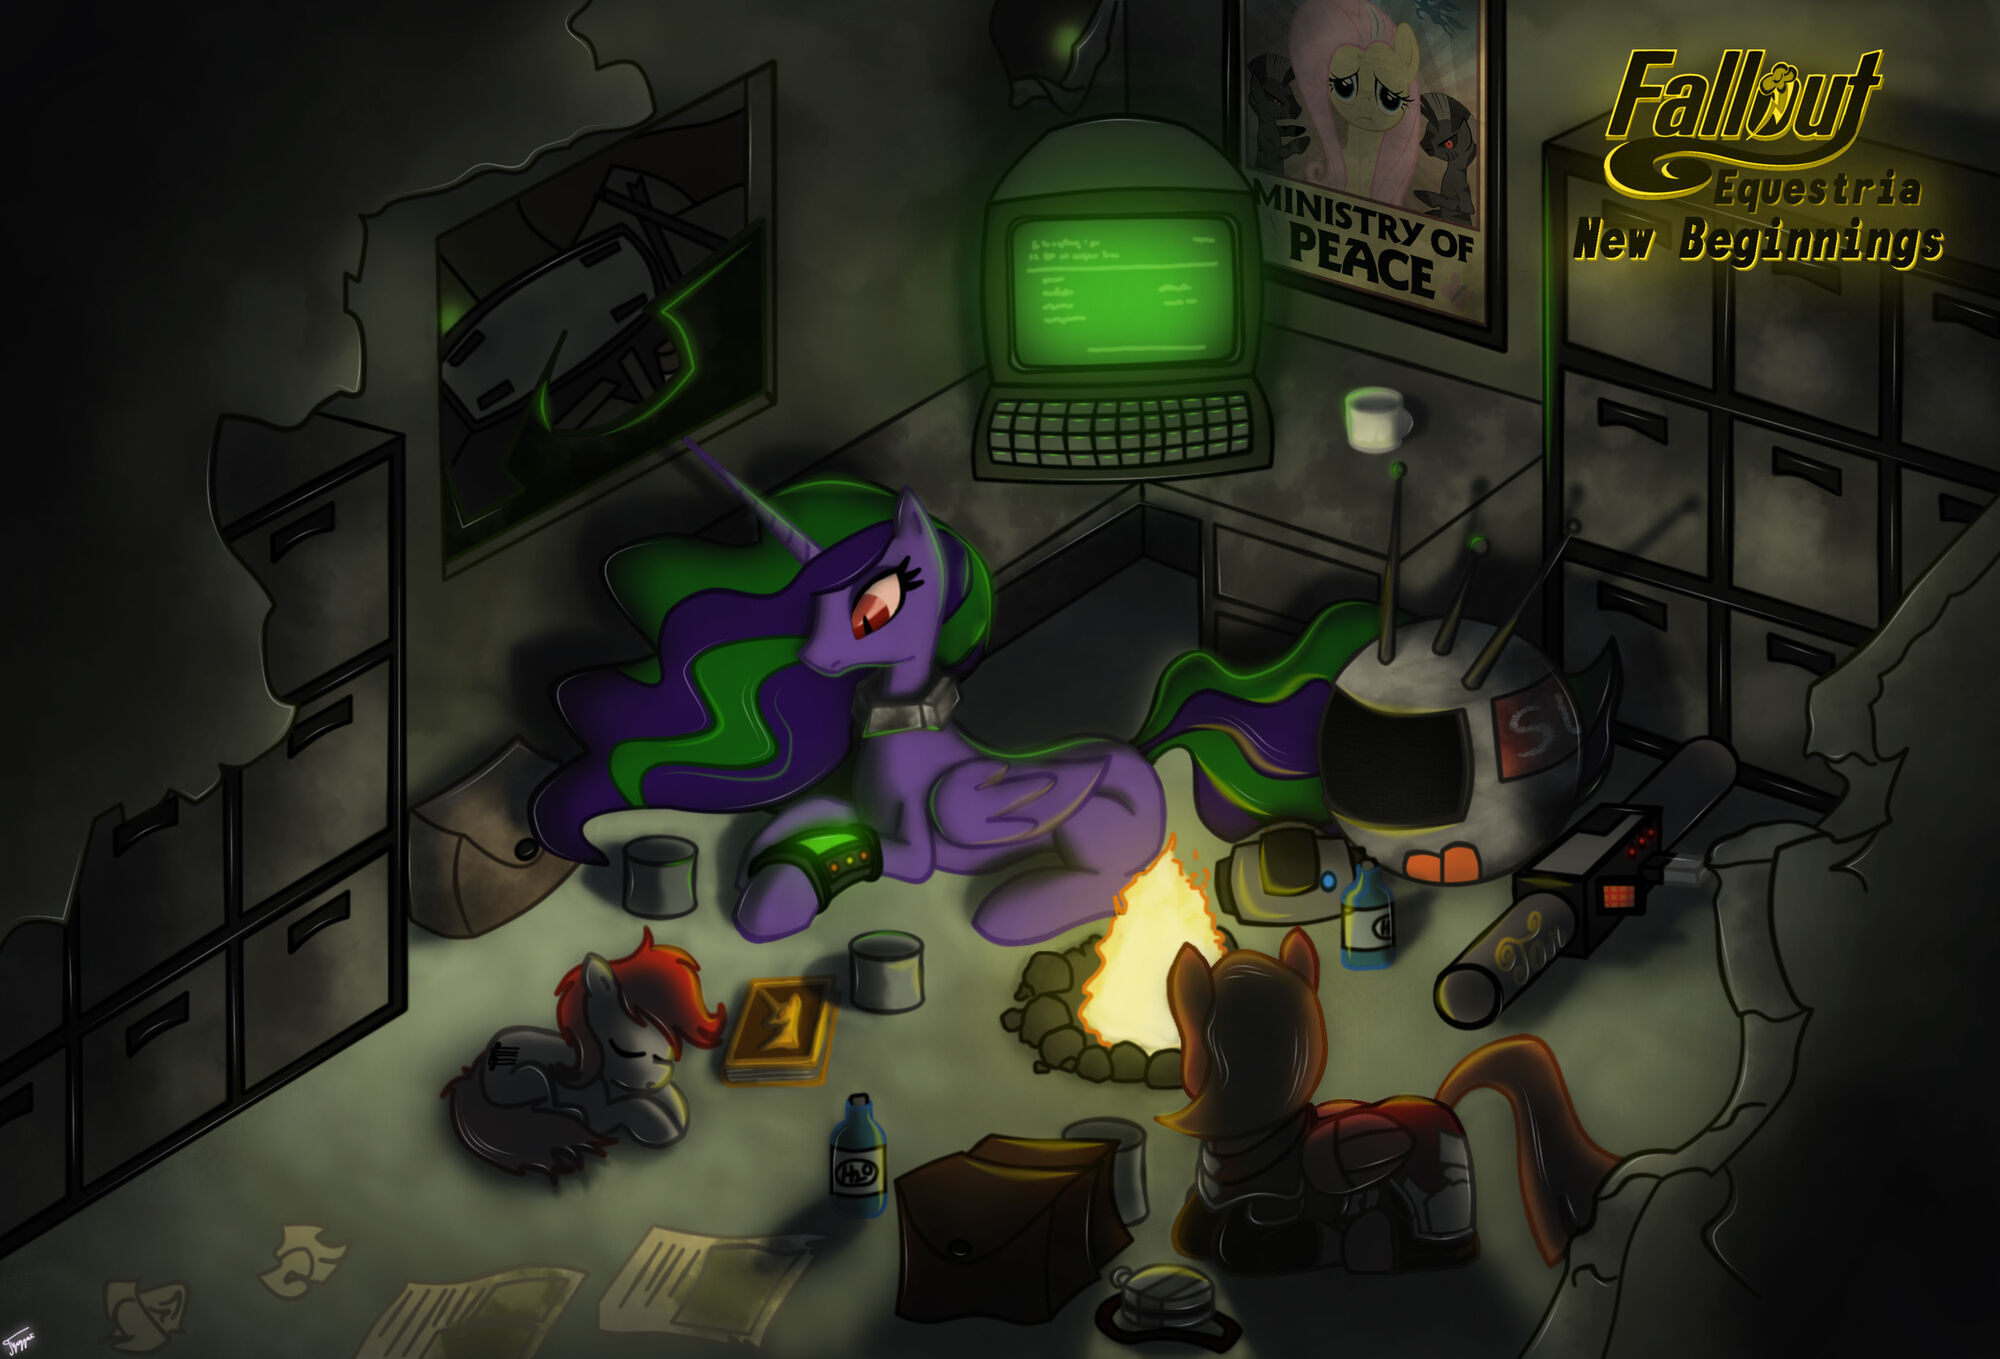 Fallout: Equestria - New Beginnings